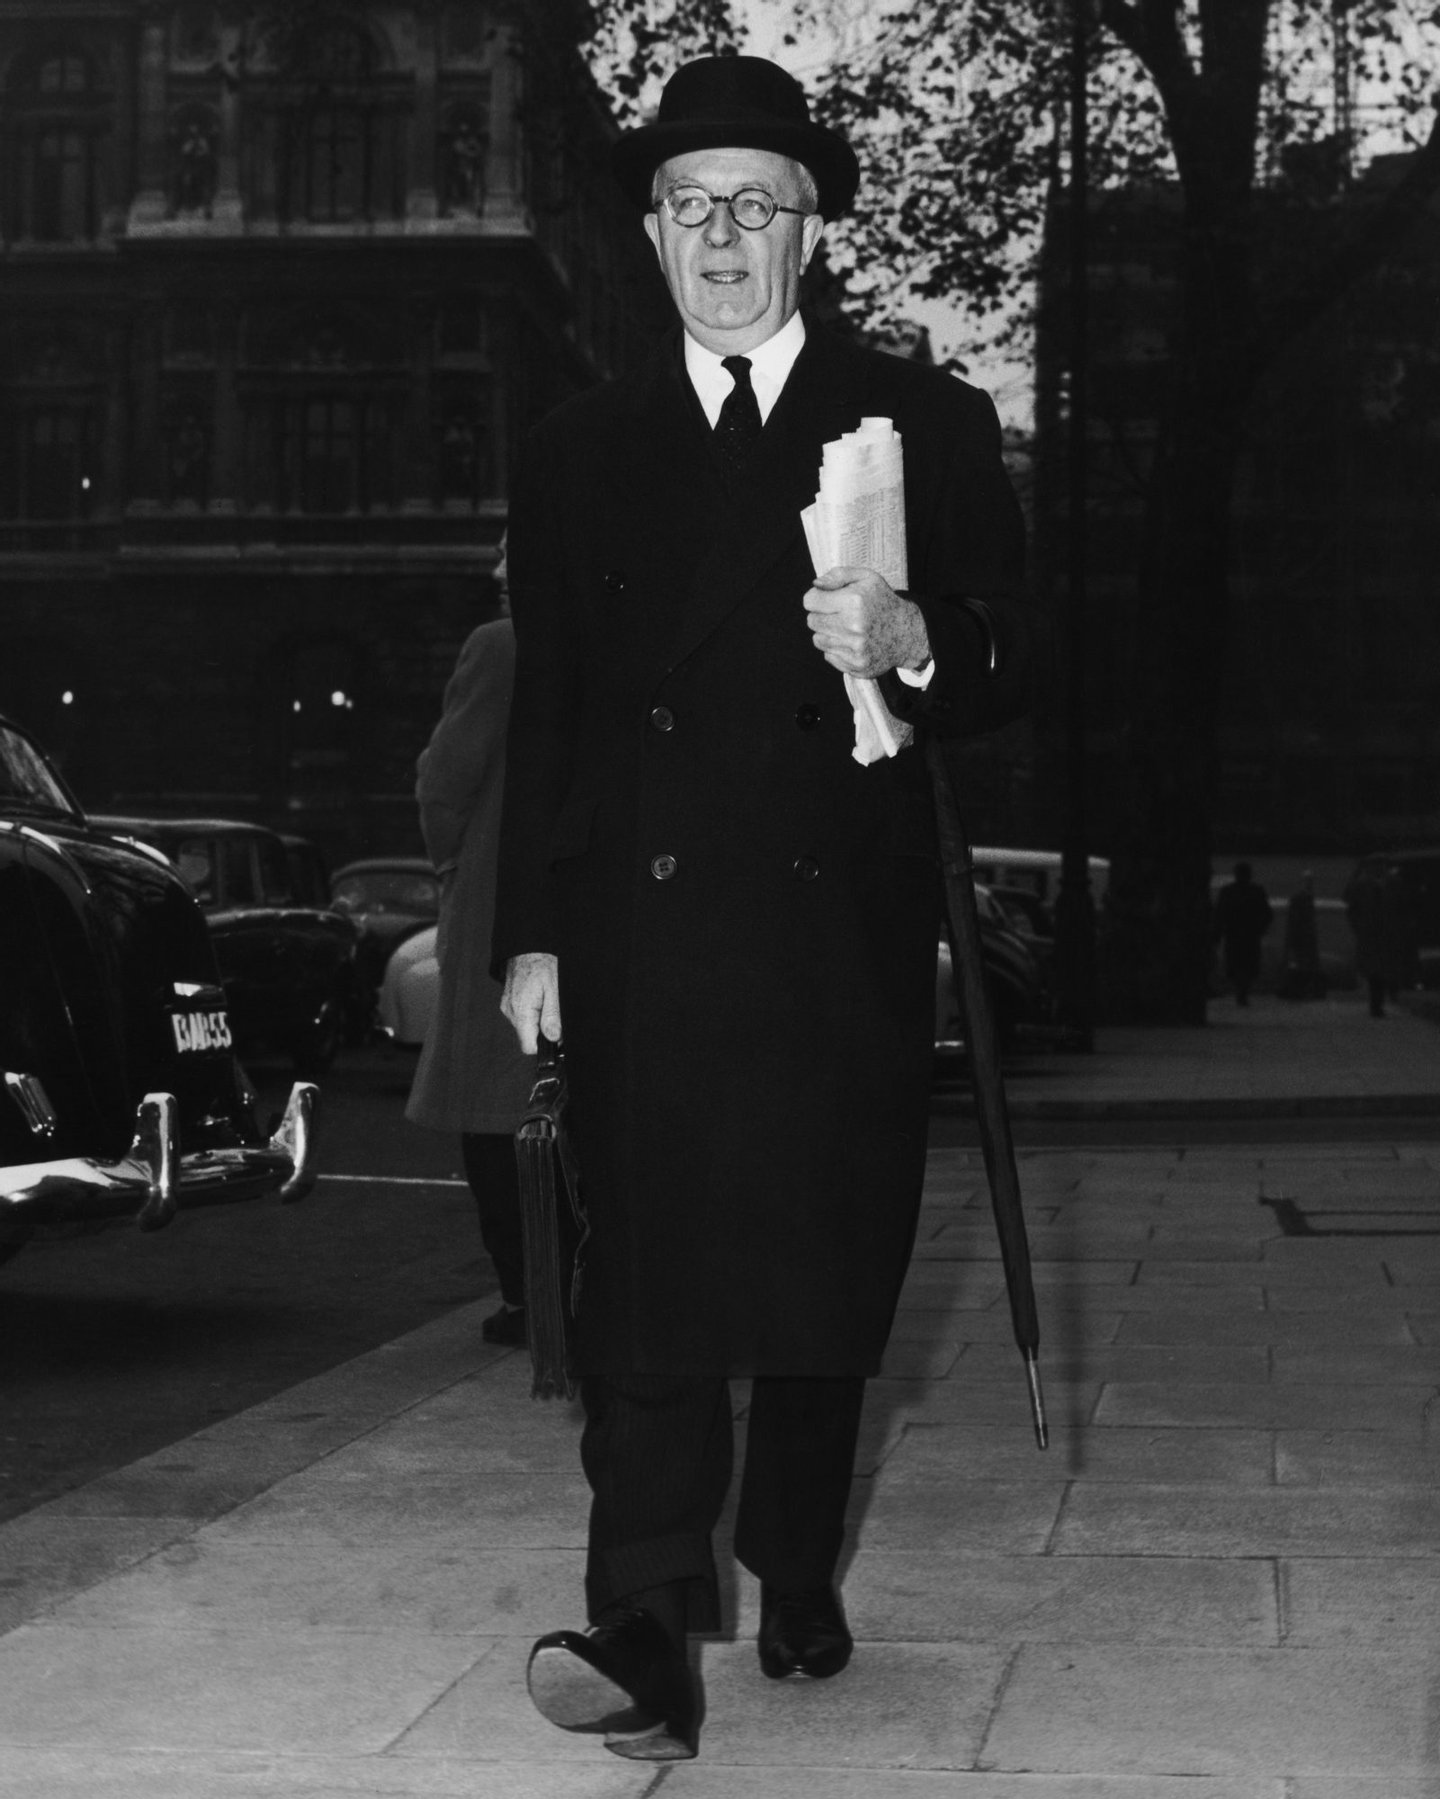 British lawyer and law lord Cyril Radcliffe, 1st Viscount Radcliffe (1899 - 1977) on his way to preside over a tribunal on spying in Britain, London, 28th November 1962. Radcliffe is best known for his partitioning of the British Imperial territory of India in 1947. (Photo by Edward Miller/Keystone/Hulton Archive/Getty Images)